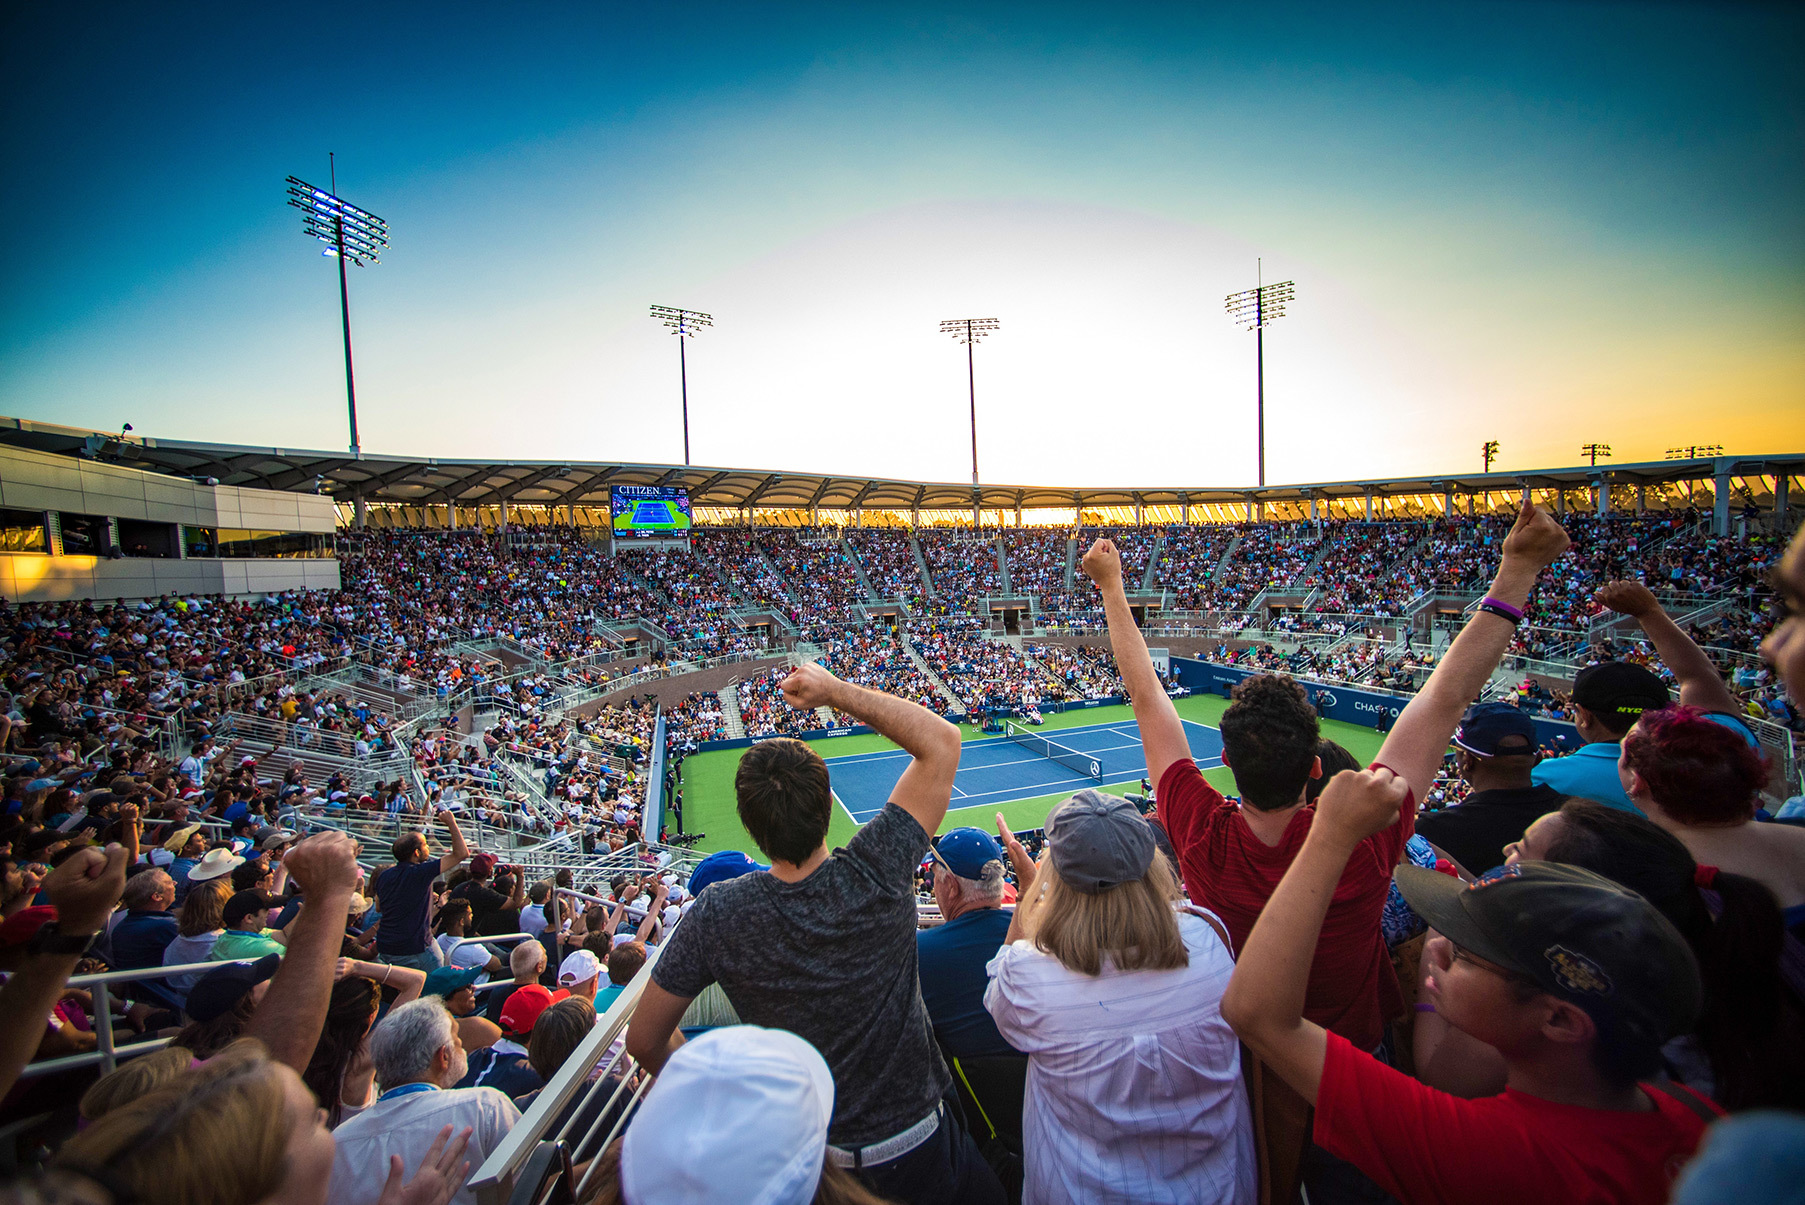 Top 10 Facts about the US Open